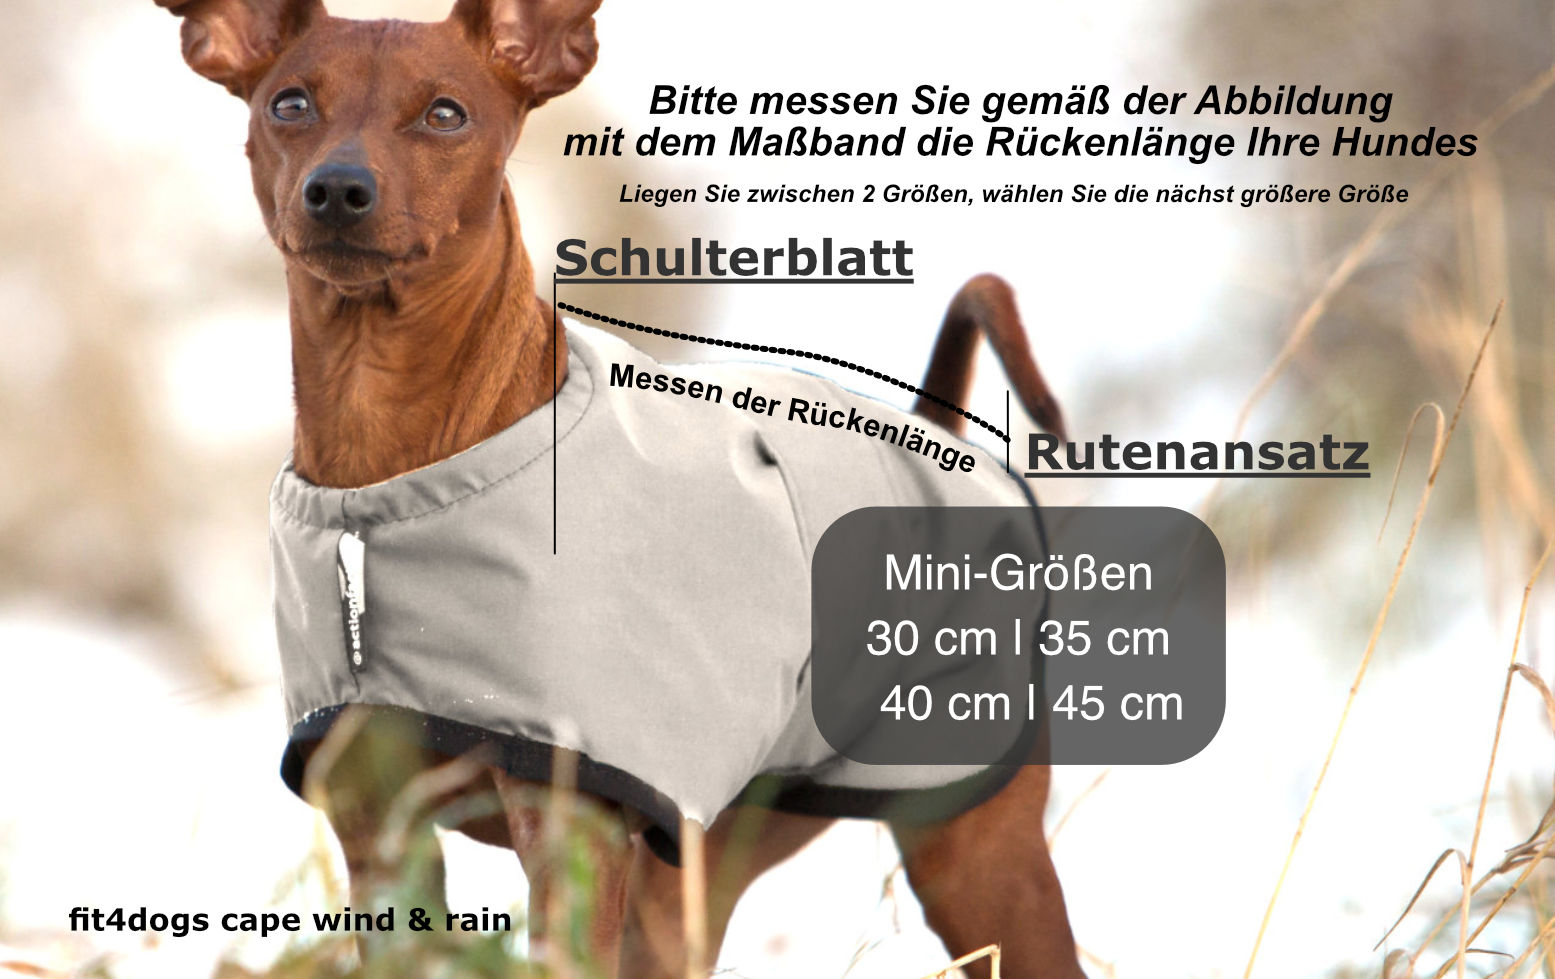 Pinscher-cape-wind-rain-sand-Grossenfindung